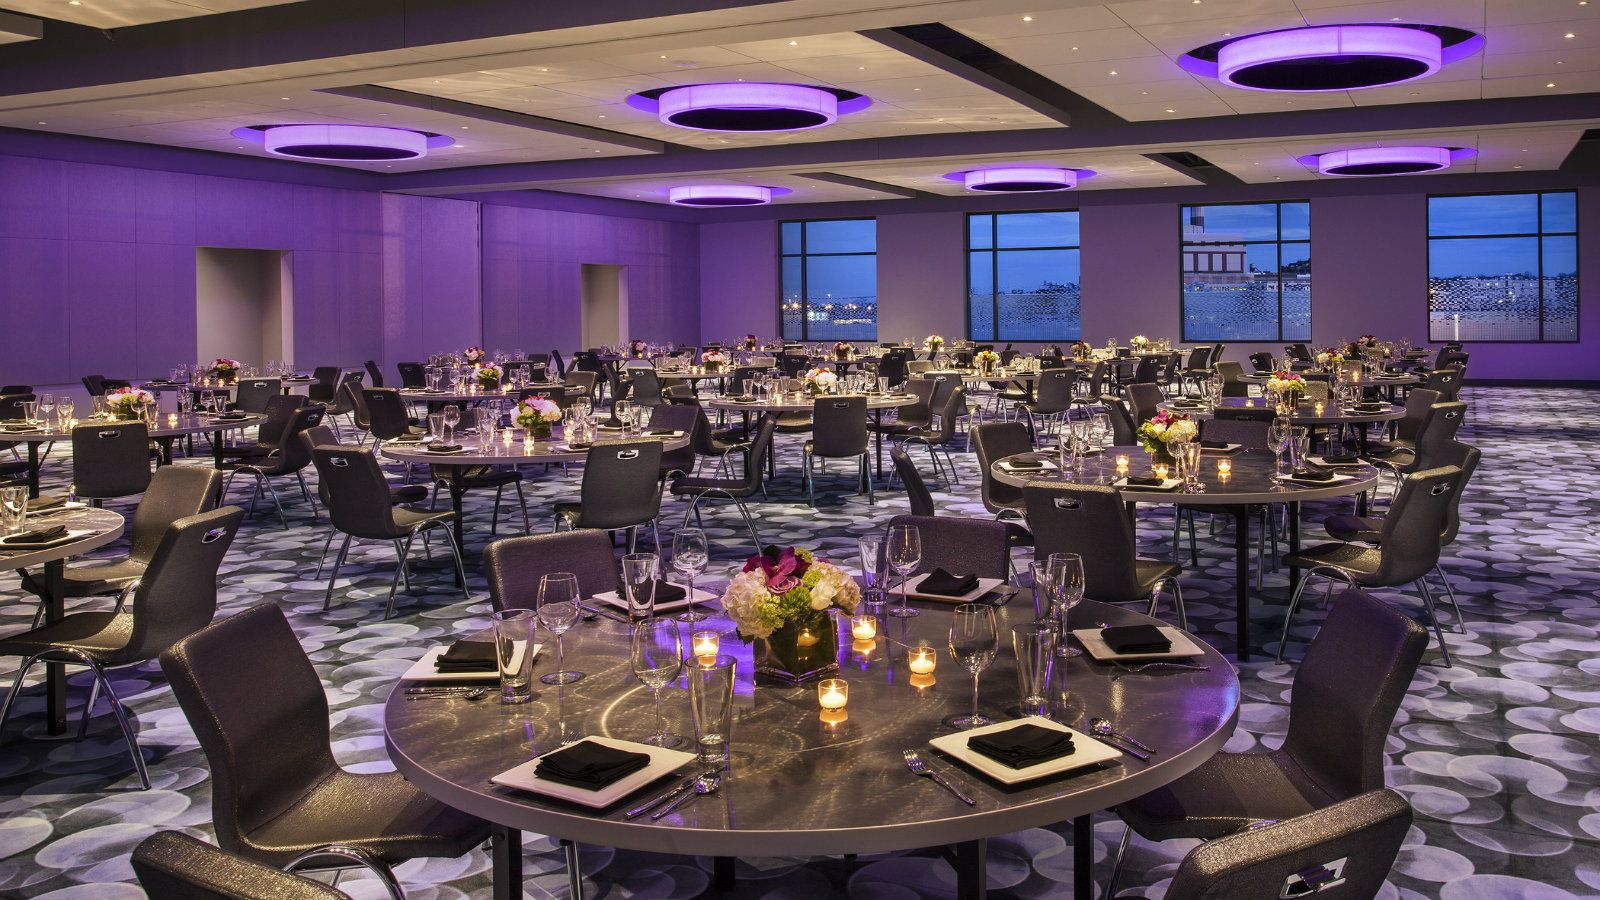 Boston Event Venues - Ballroom